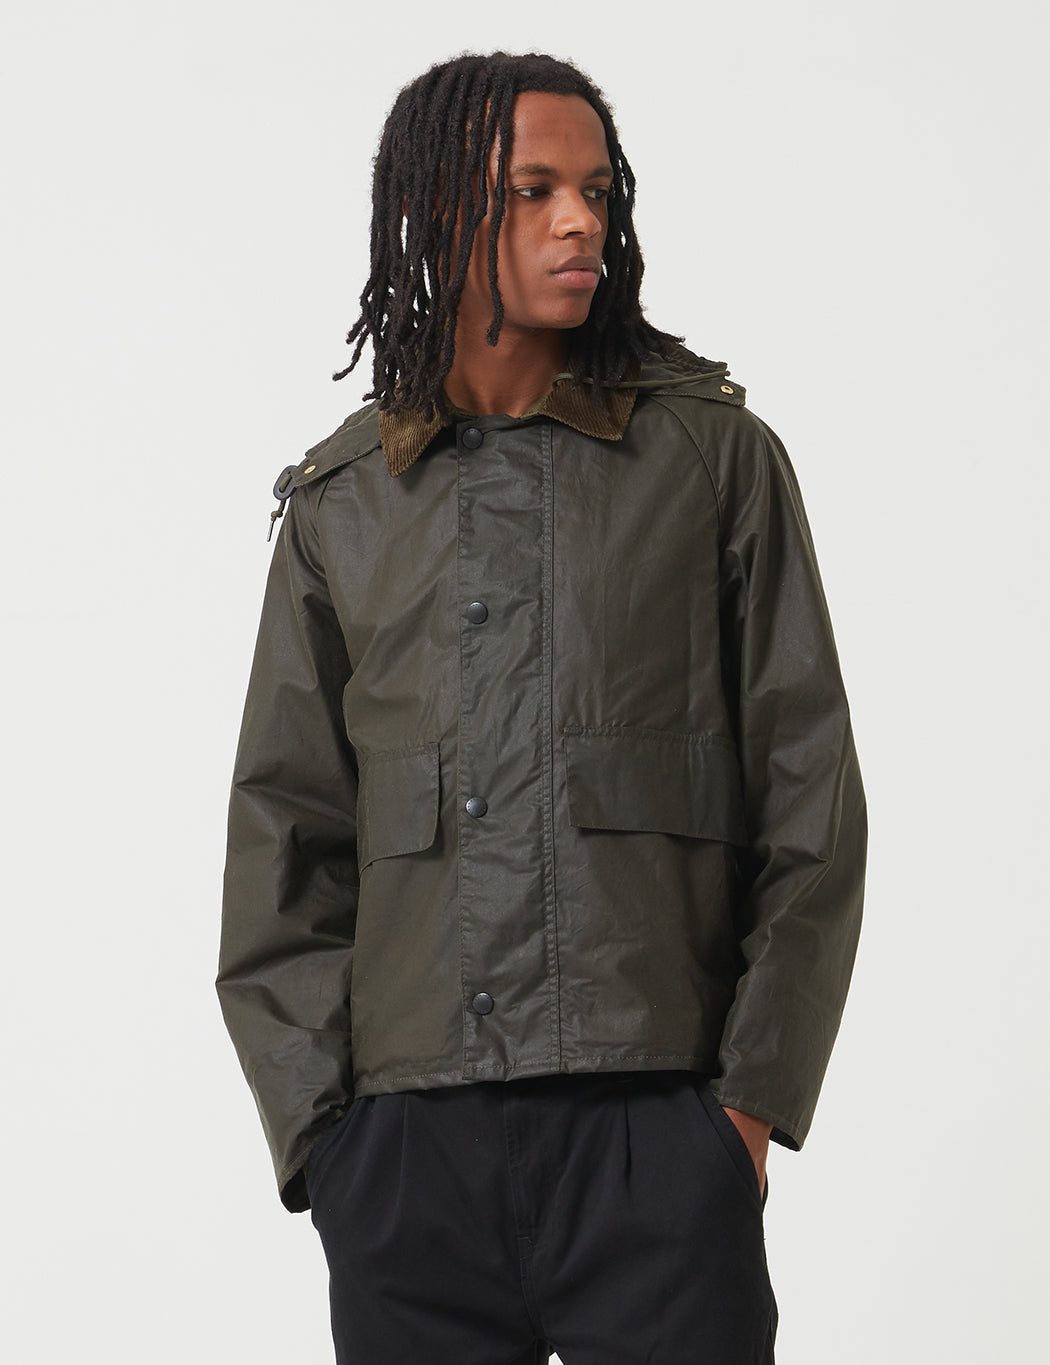 Barbour x Margaret Howell Spey Jacket (Wax) - Archive Olive Green